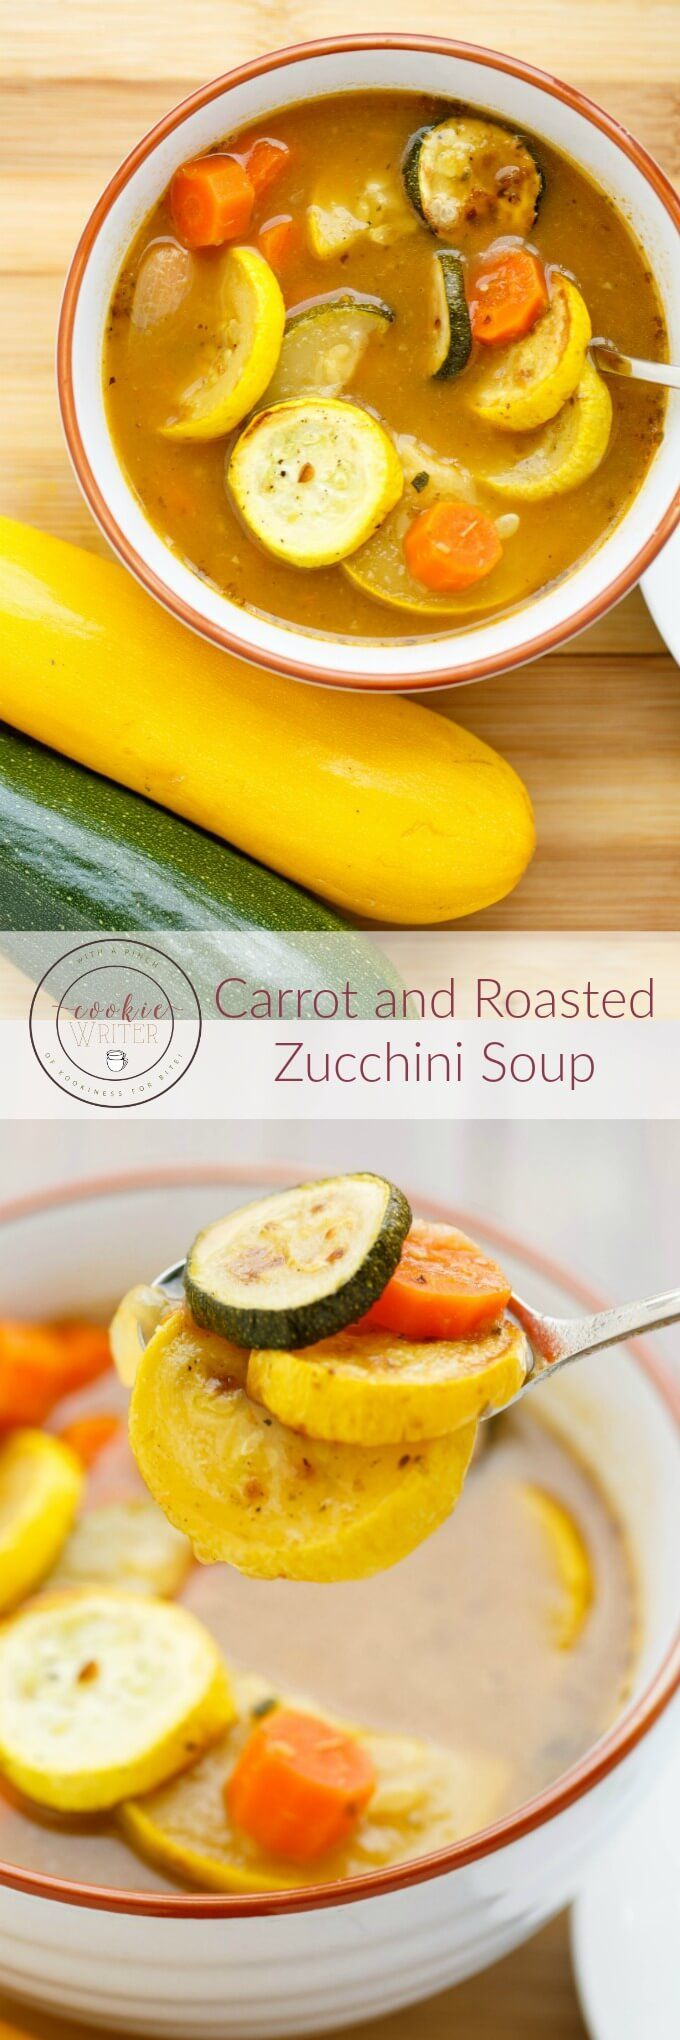 Carrot and Roasted Zucchini Soup   @thecookiewriter